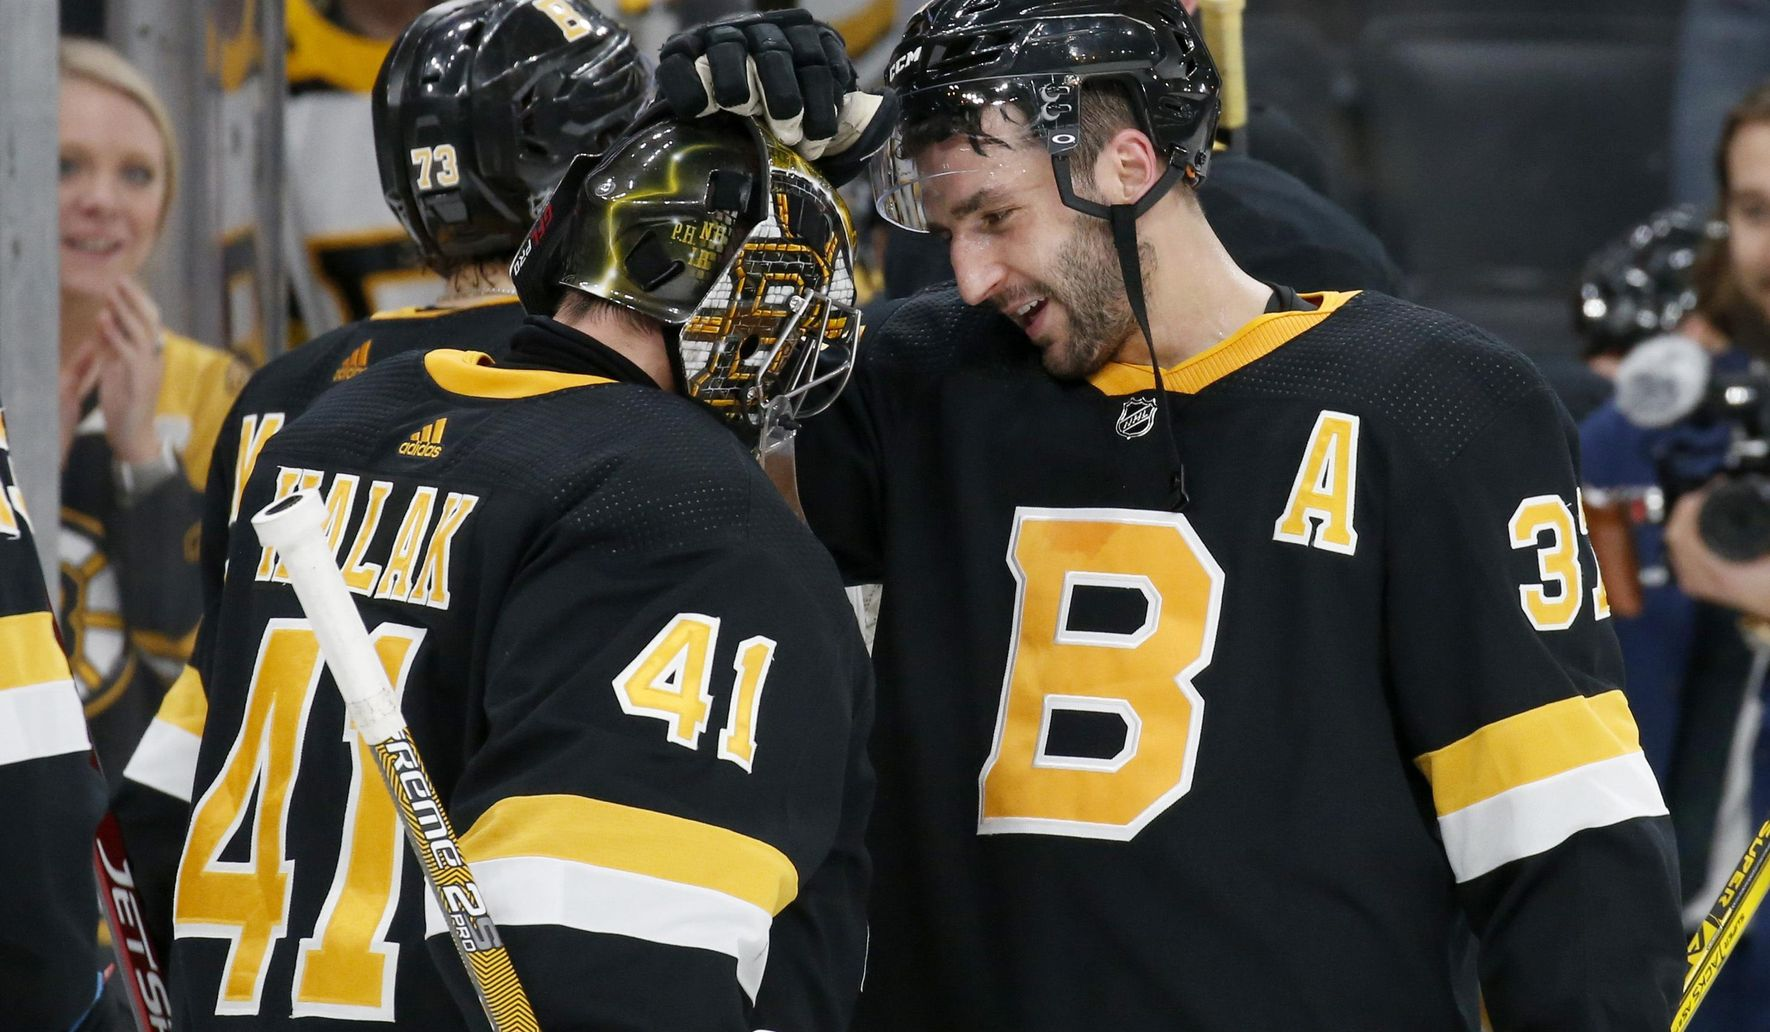 Penguins_bruins_hockey_45317_c0-124-2968-1854_s1770x1032